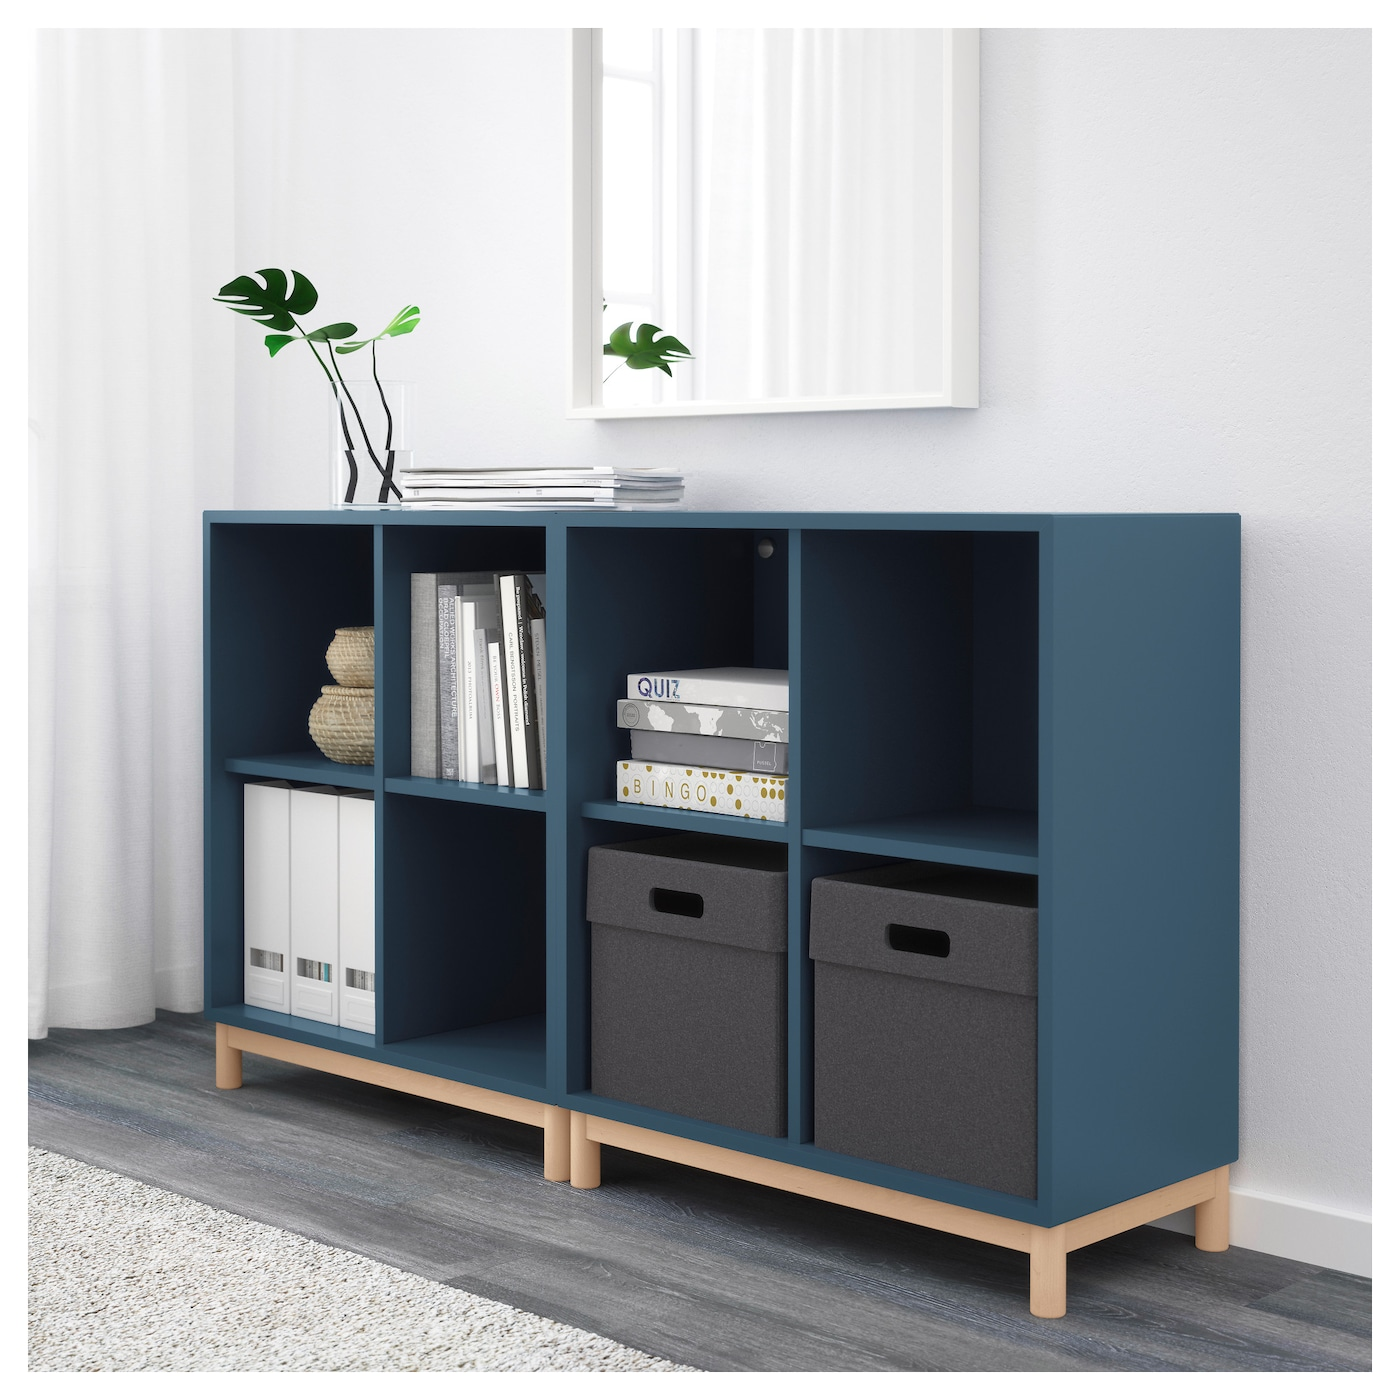 eket cabinet combination with legs dark blue 140 x 35 x 80. Black Bedroom Furniture Sets. Home Design Ideas